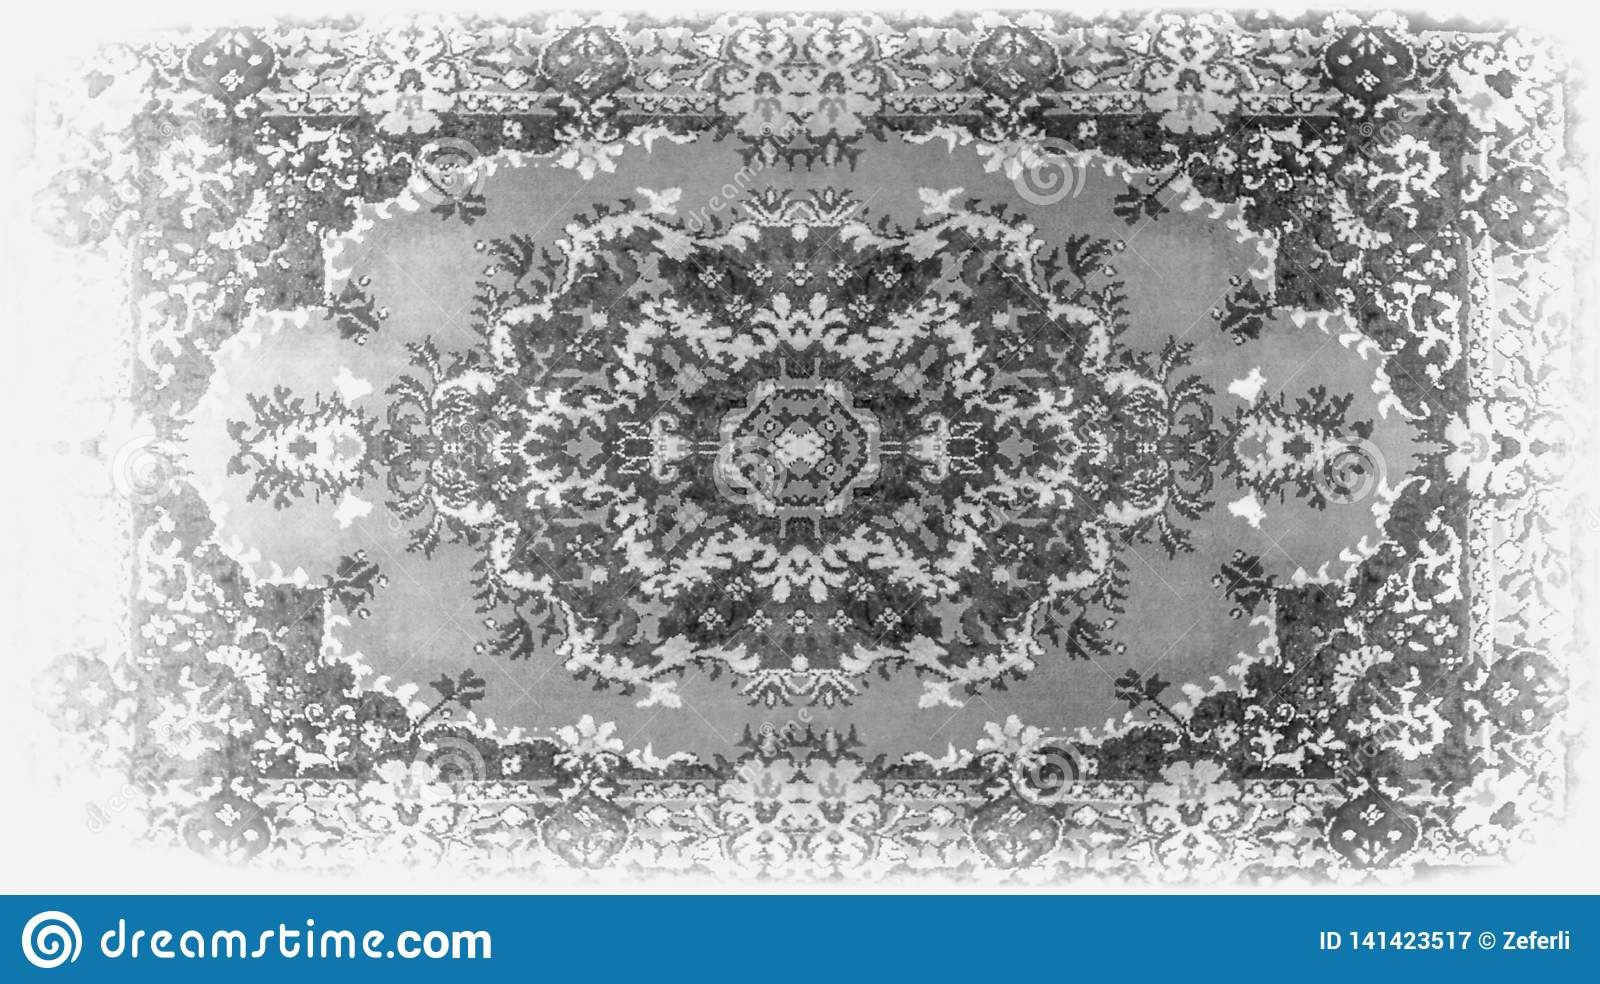 Persian Carpet Texture, abstract ornament. Round mandala pattern, Middle Eastern Traditional Carpet Fabric Texture. Turquoise